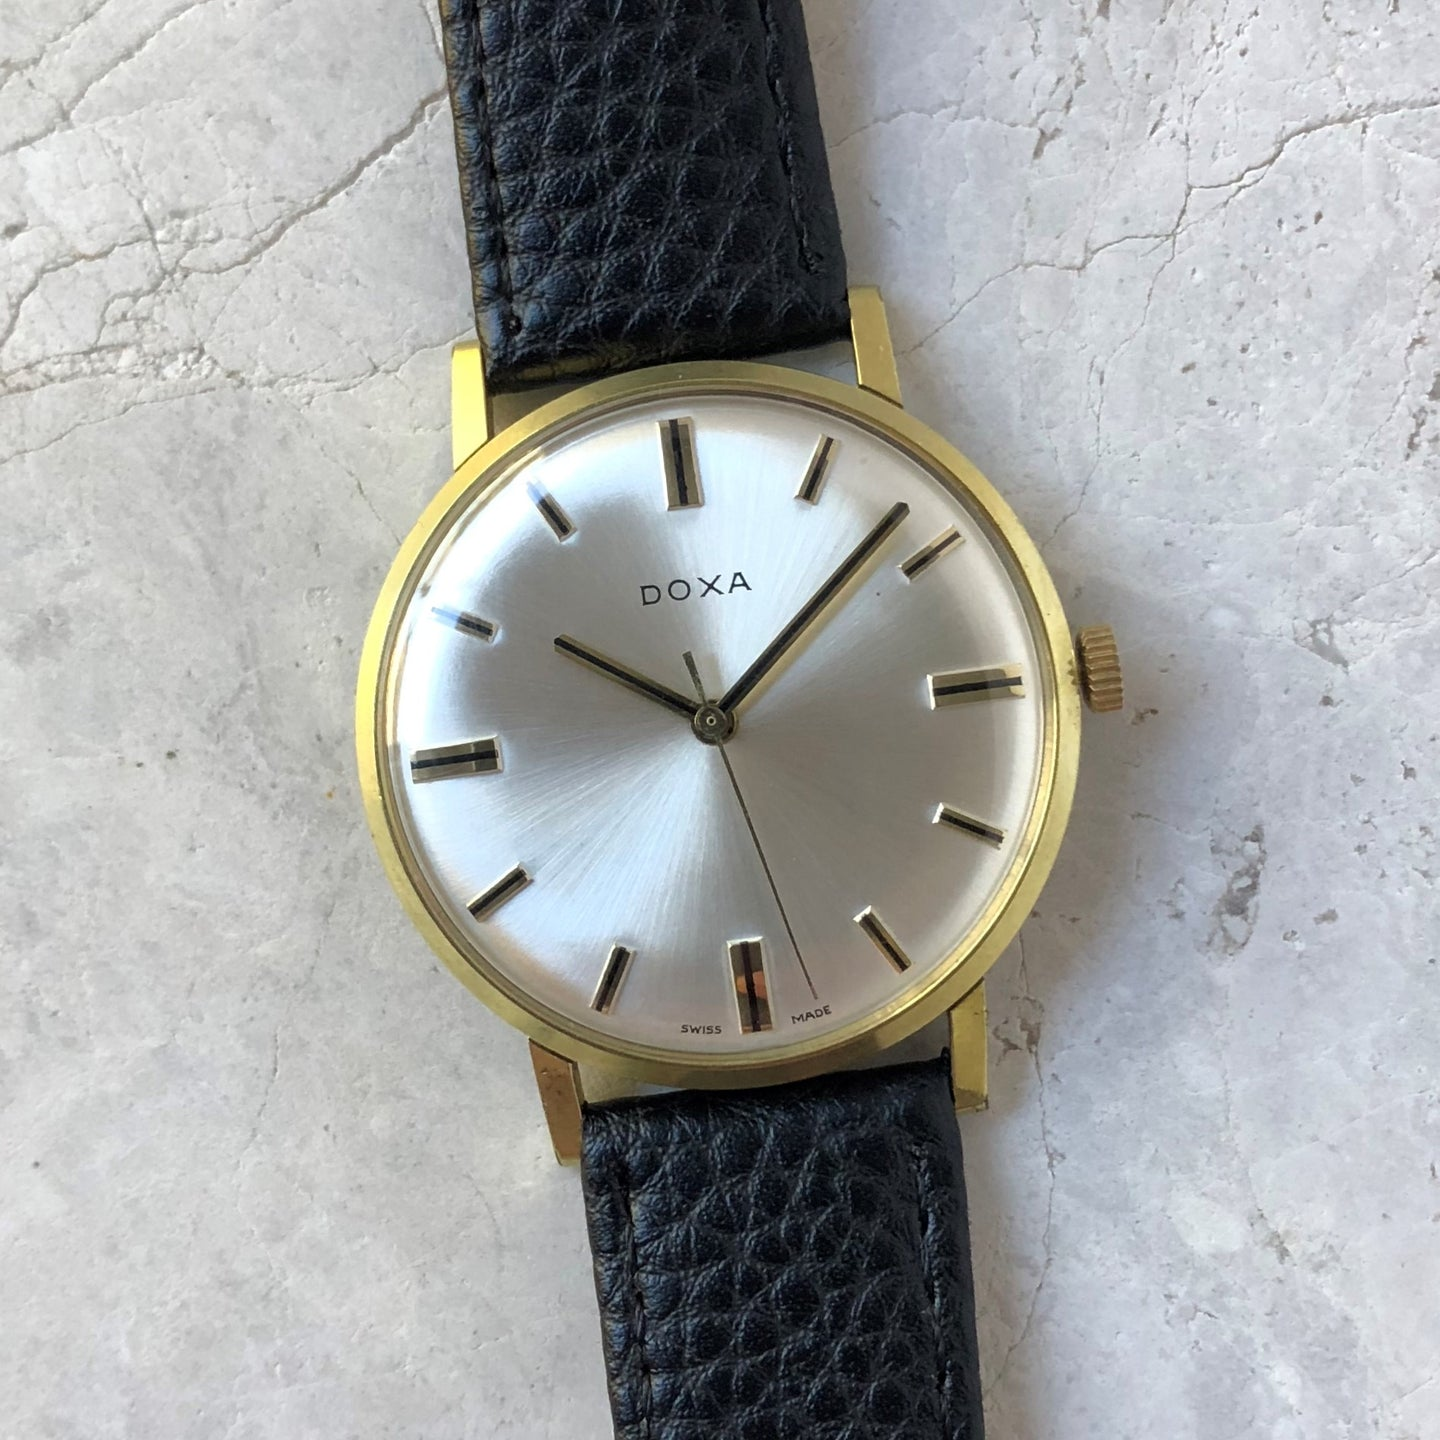 Vintage Doxa dress watch